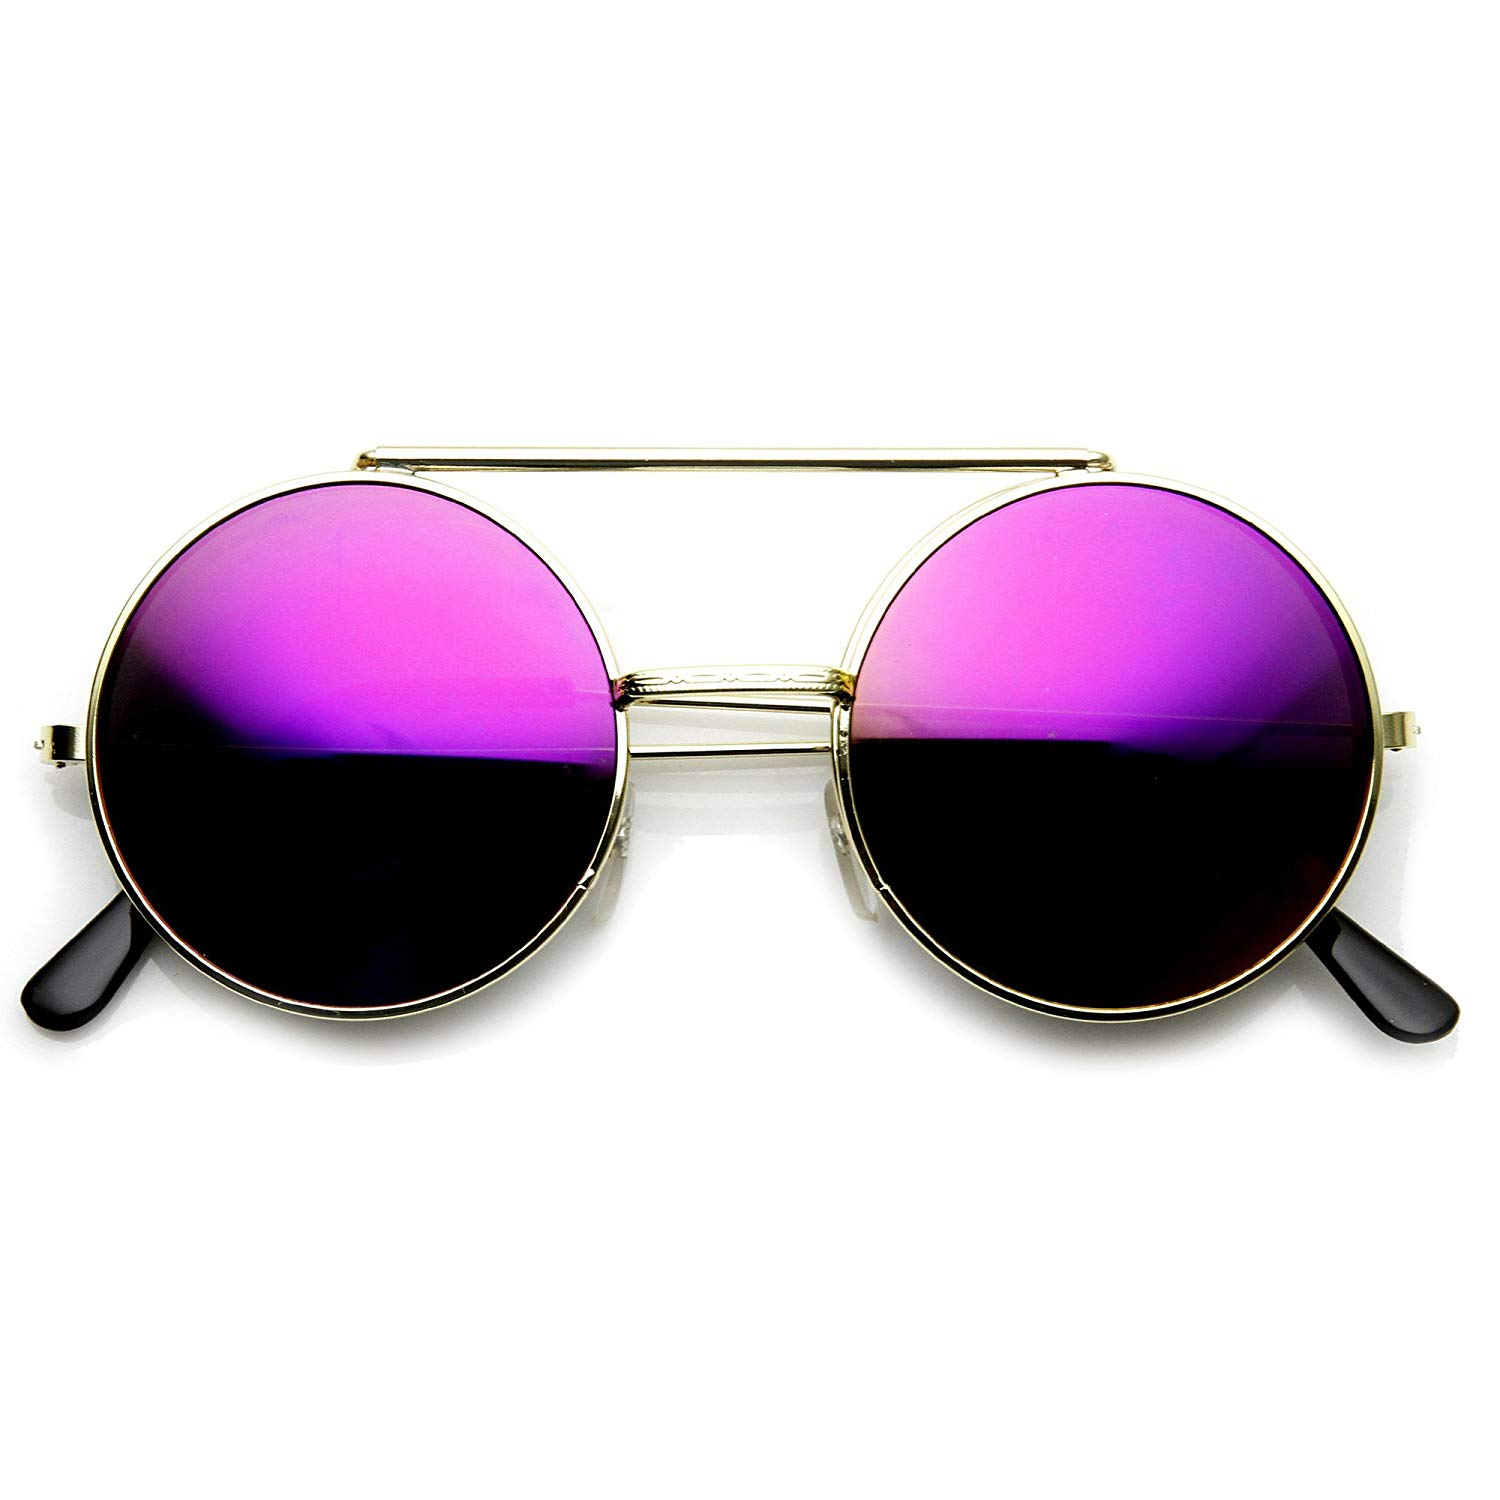 a3c0ddc6af5a8 zeroUV - Limited Edition Red Mirror Flip-Up Lens Round Circle Django  Sunglasses